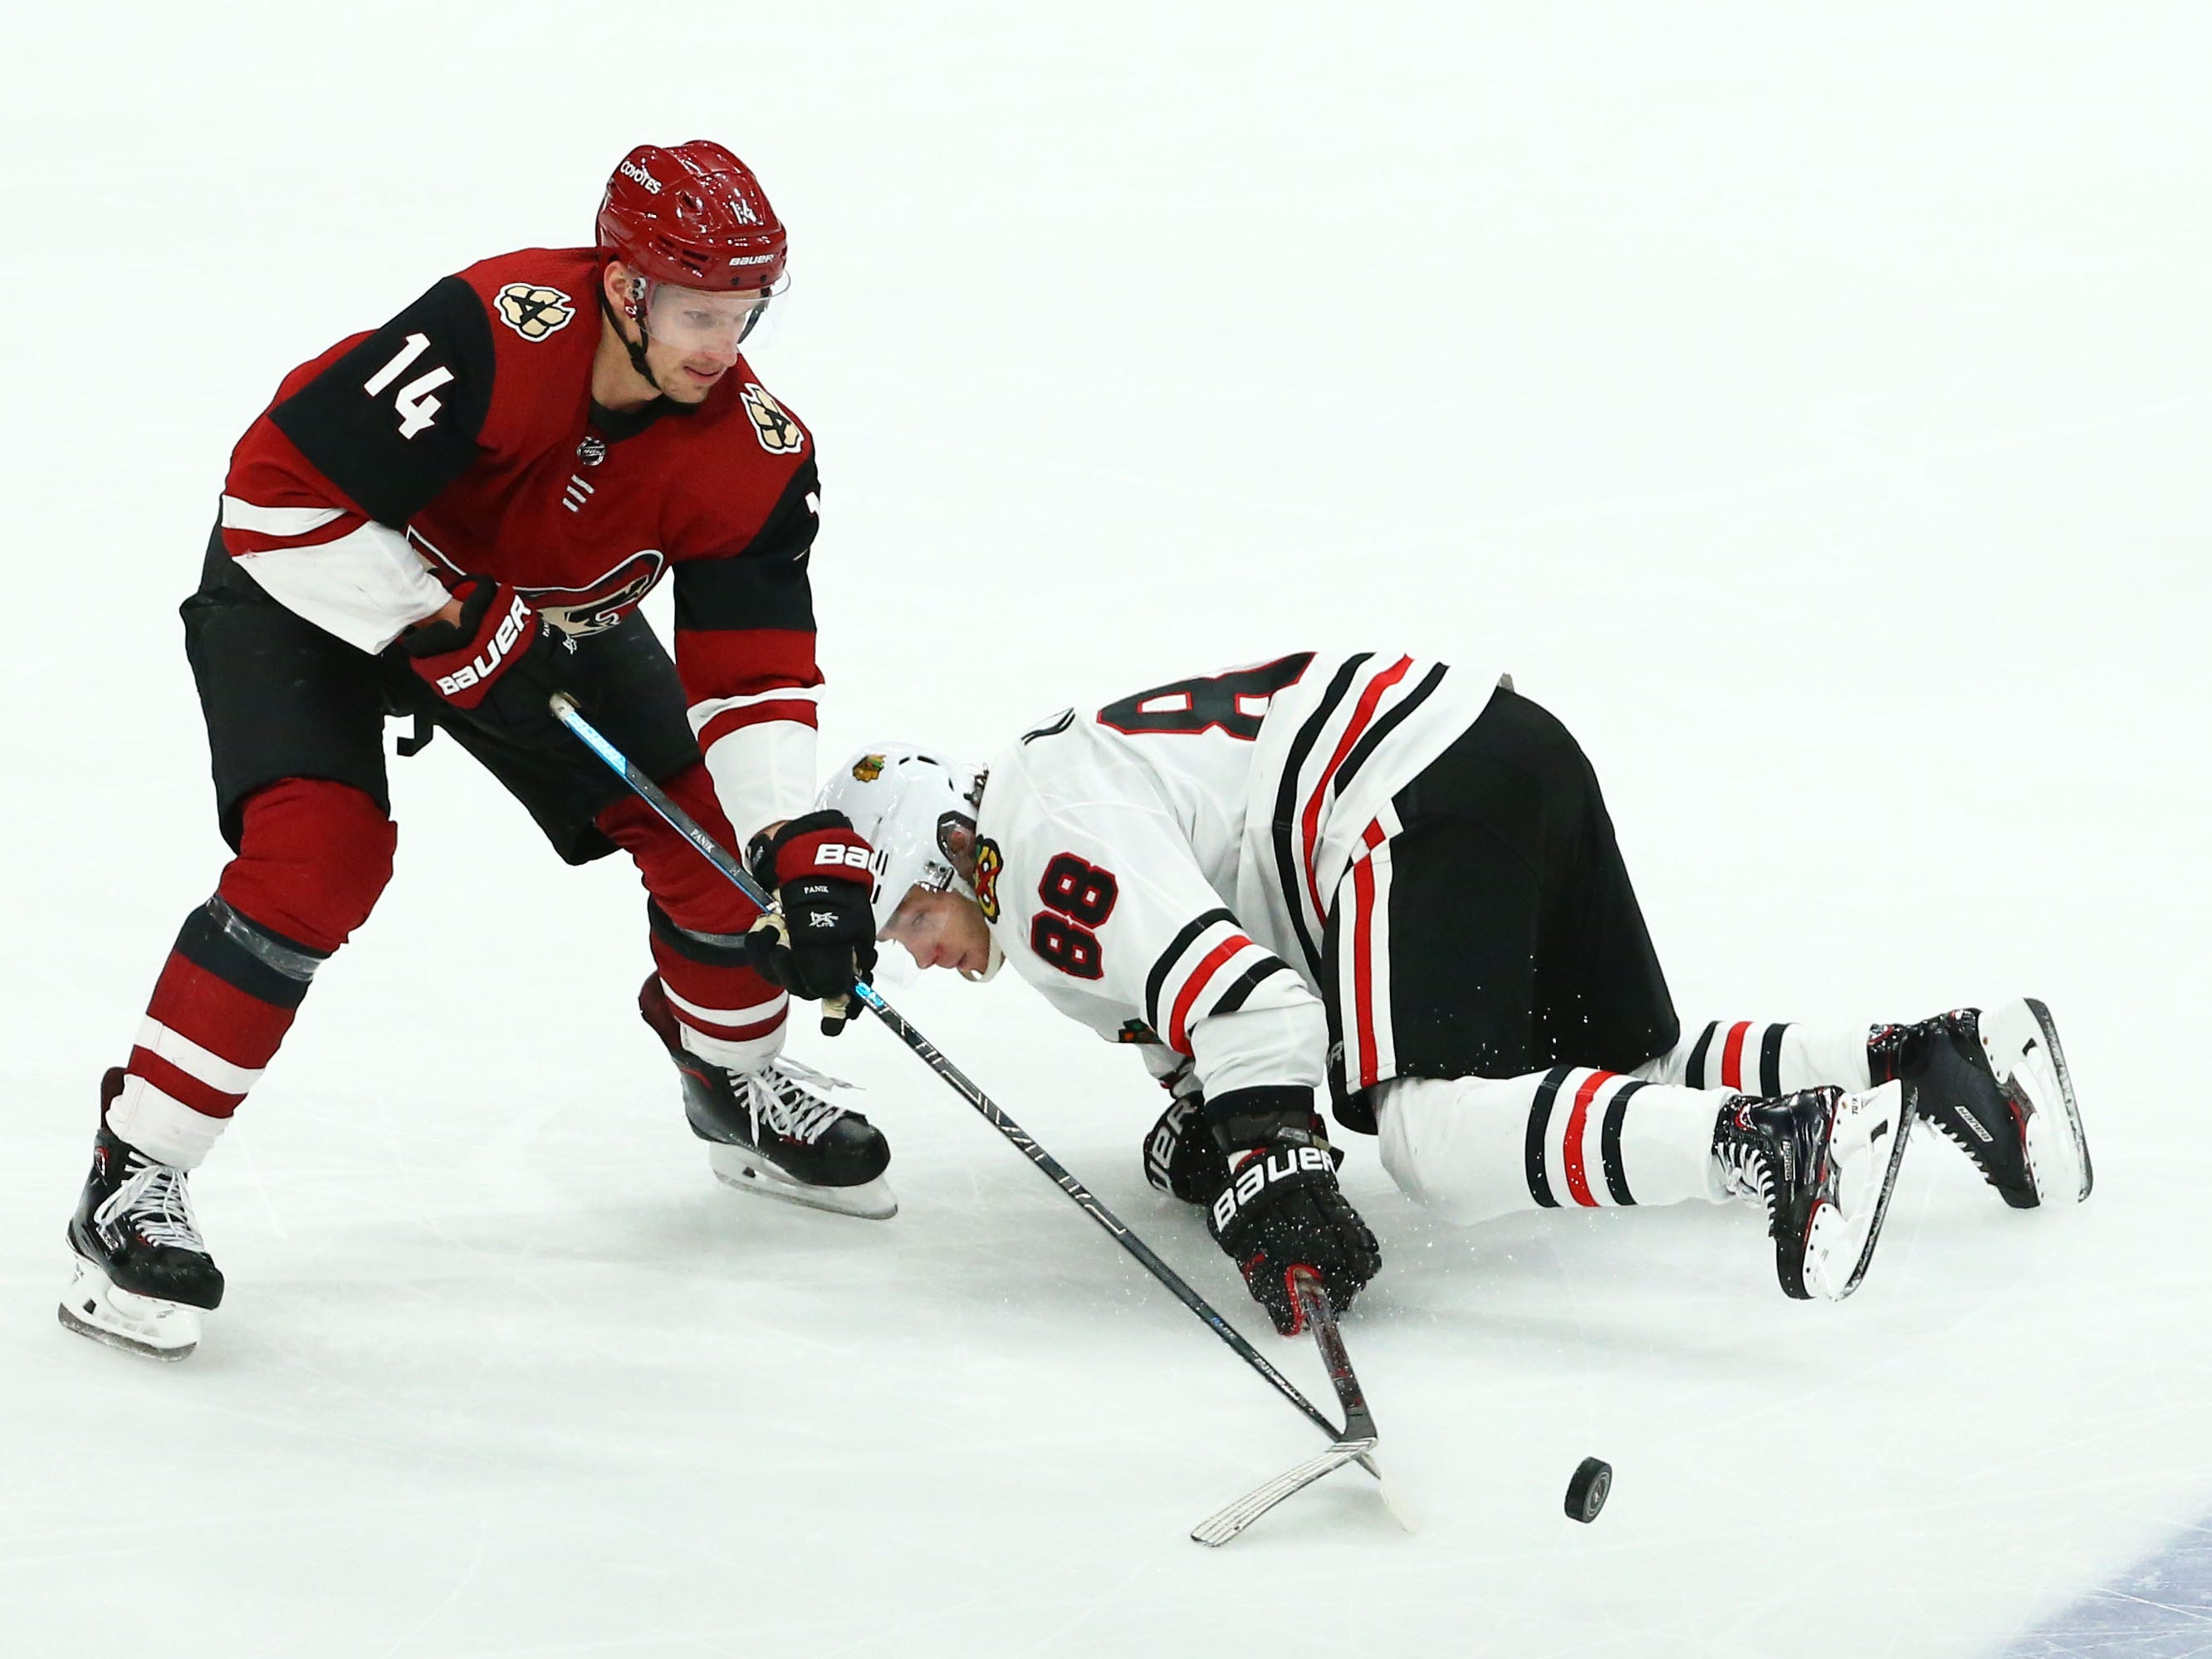 Arizona Coyotes right wing Richard Panik (14) battles with Chicago Blackhawks right wing Patrick Kane (88) in the third period on Mar. 26, 2019, at Gila River Arena in Glendale, Ariz.